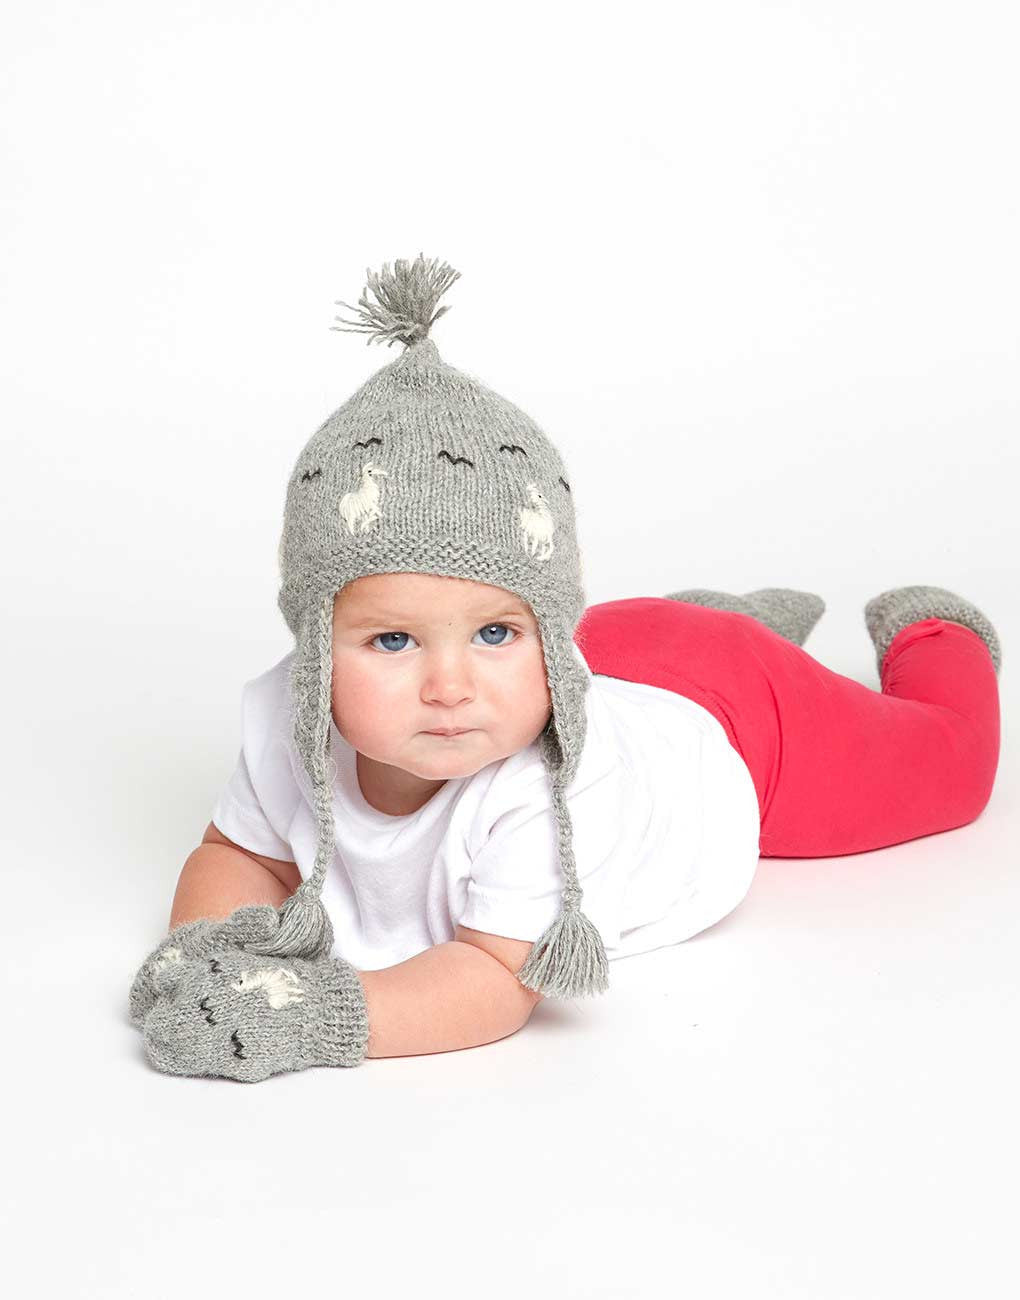 Fair Trade Natural Peruvian Alpaca Wool Hand-Knit Baby Beanie - Gray Alpaca